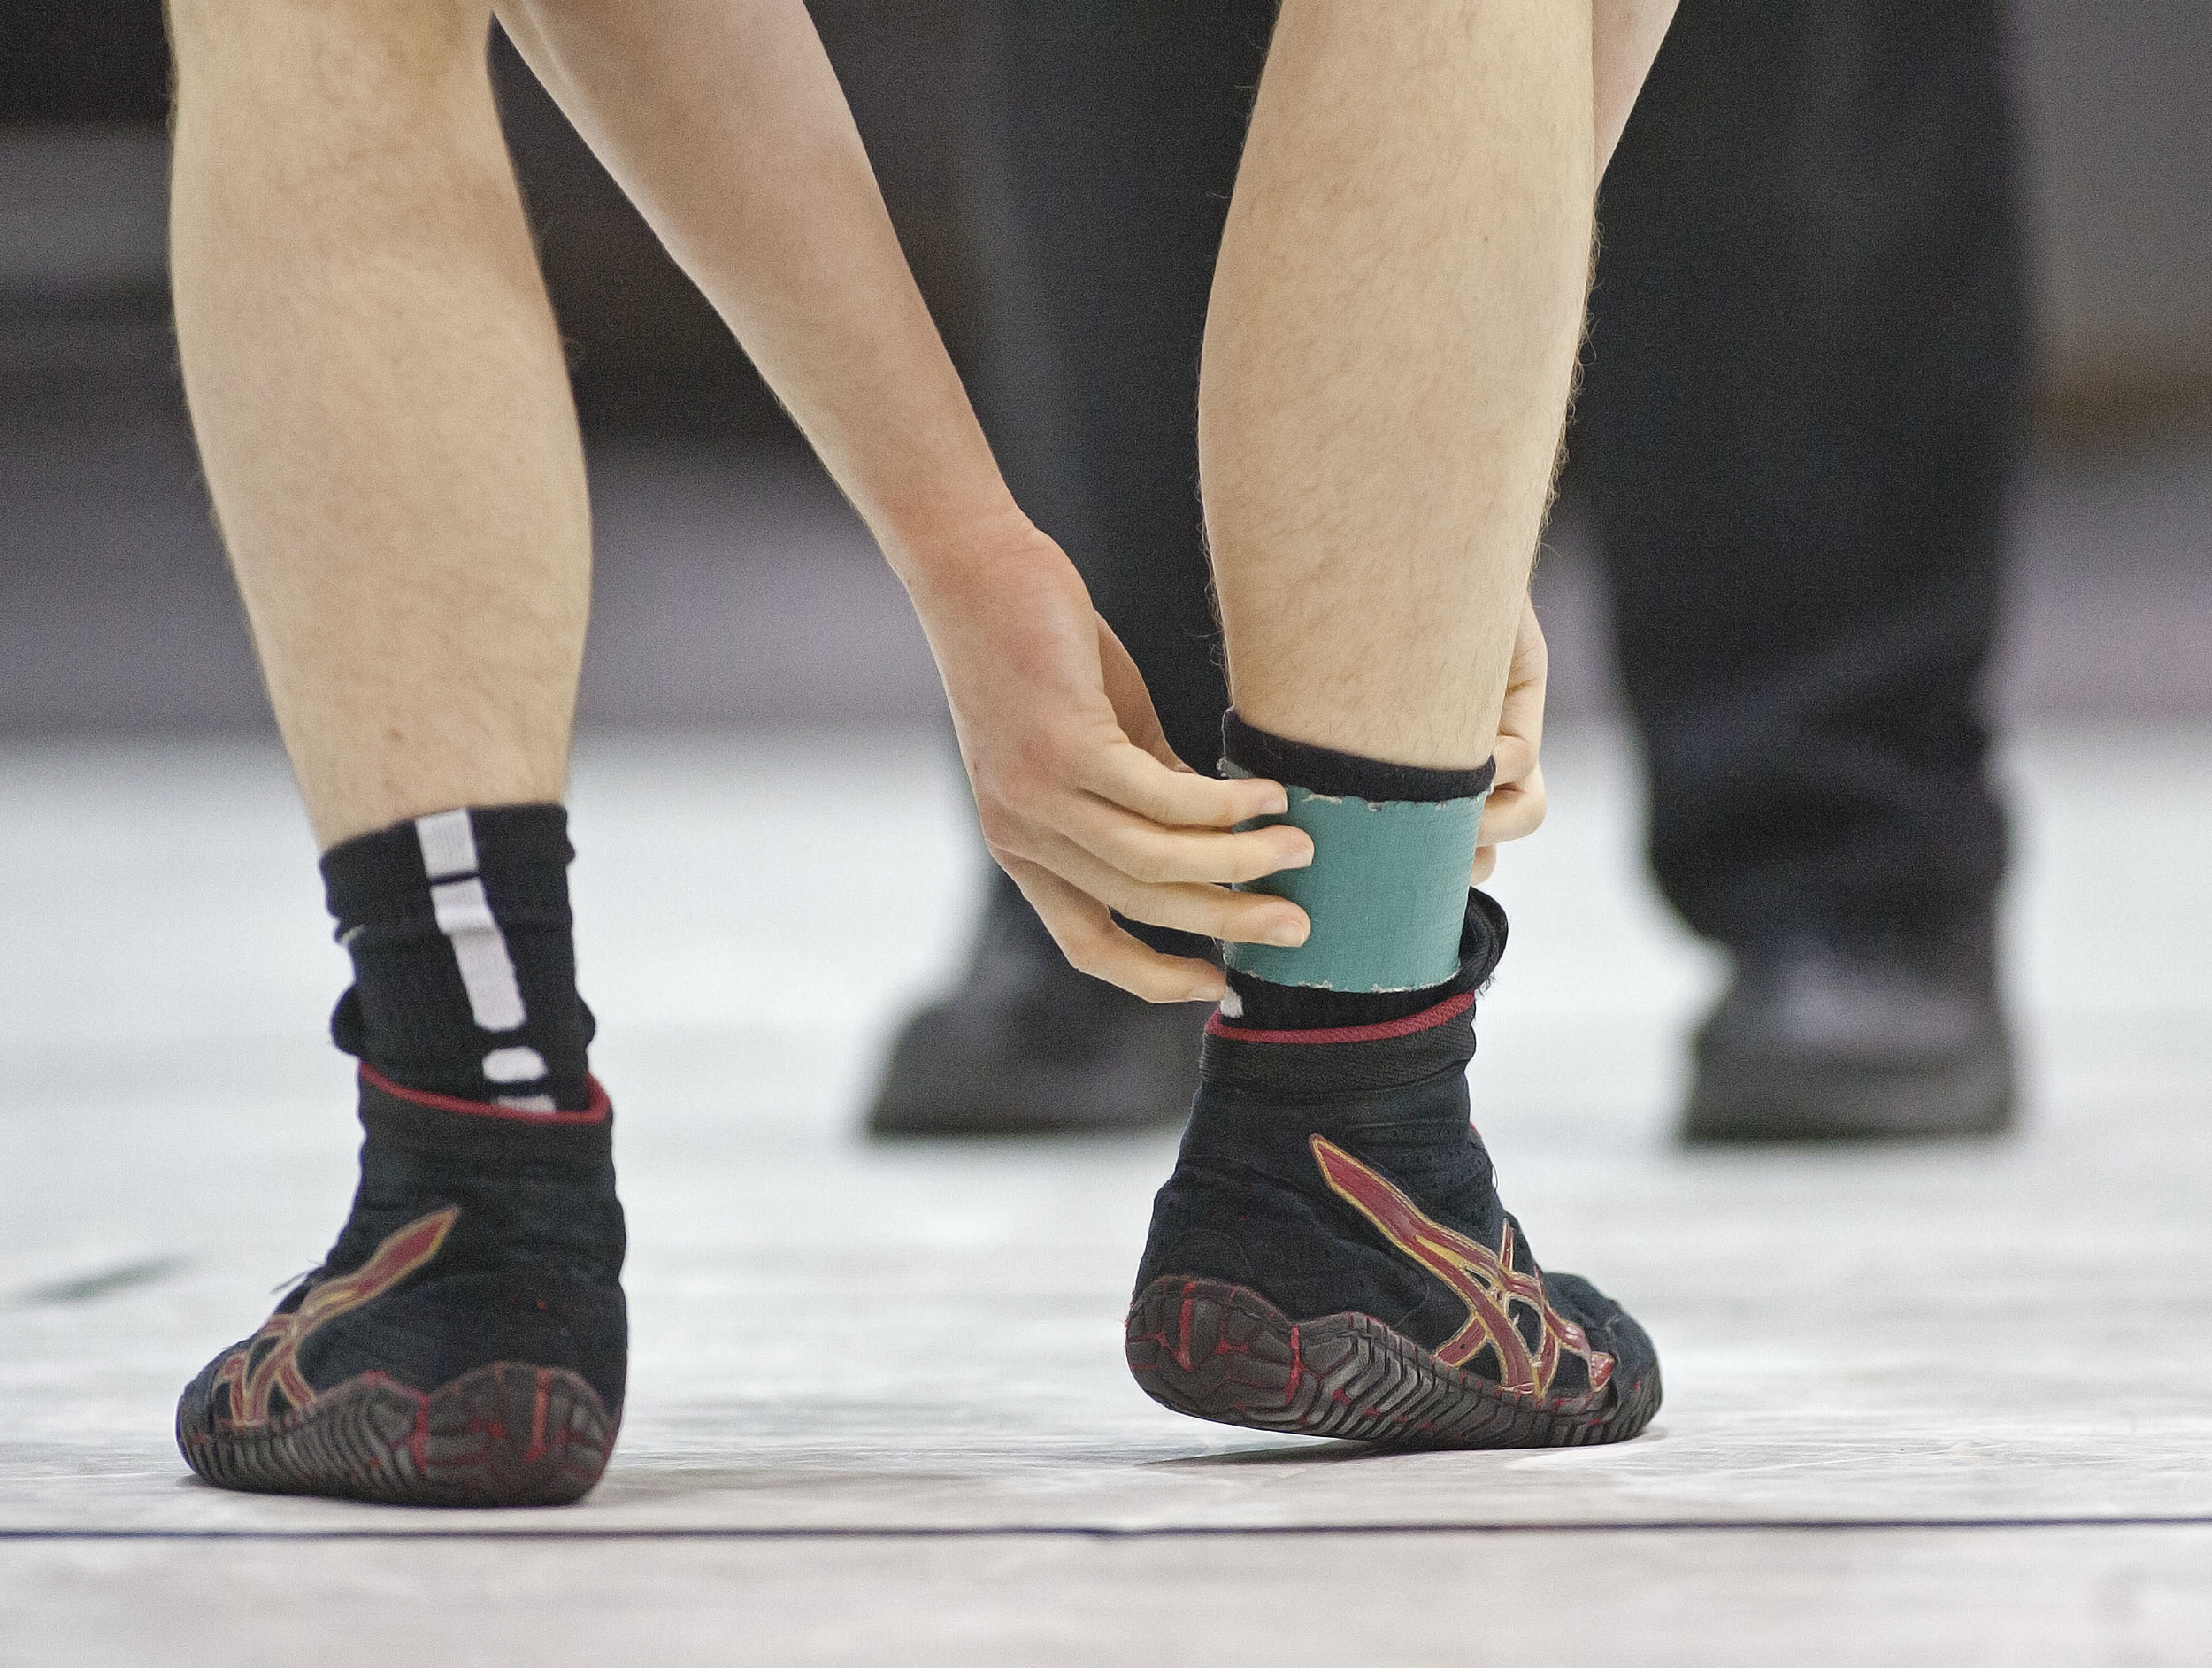 Carbondale High School's Will Meador wraps his ankle prior to his first round match with Cahokia's Deairis Tipler.